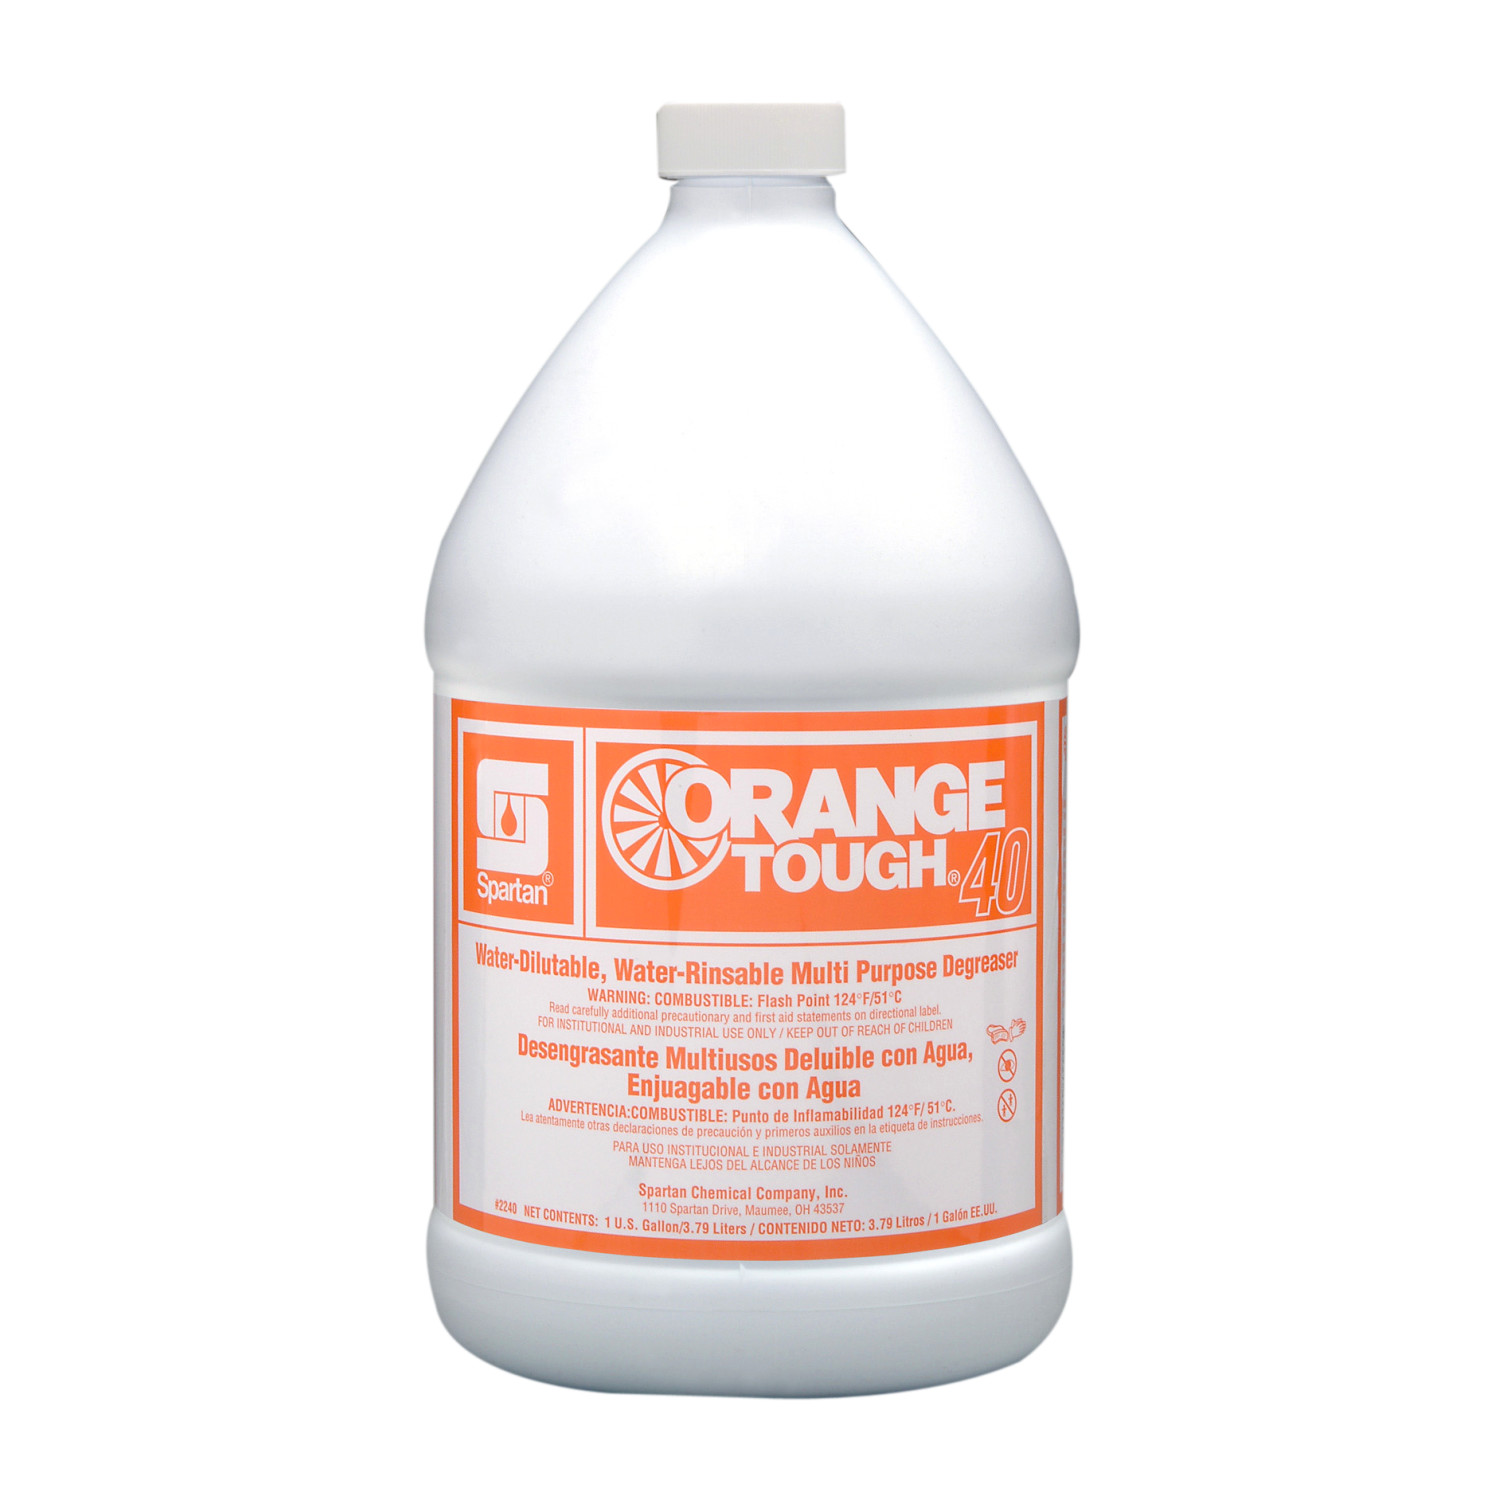 ORANGE TOUGH 40 DEGREASER (4)